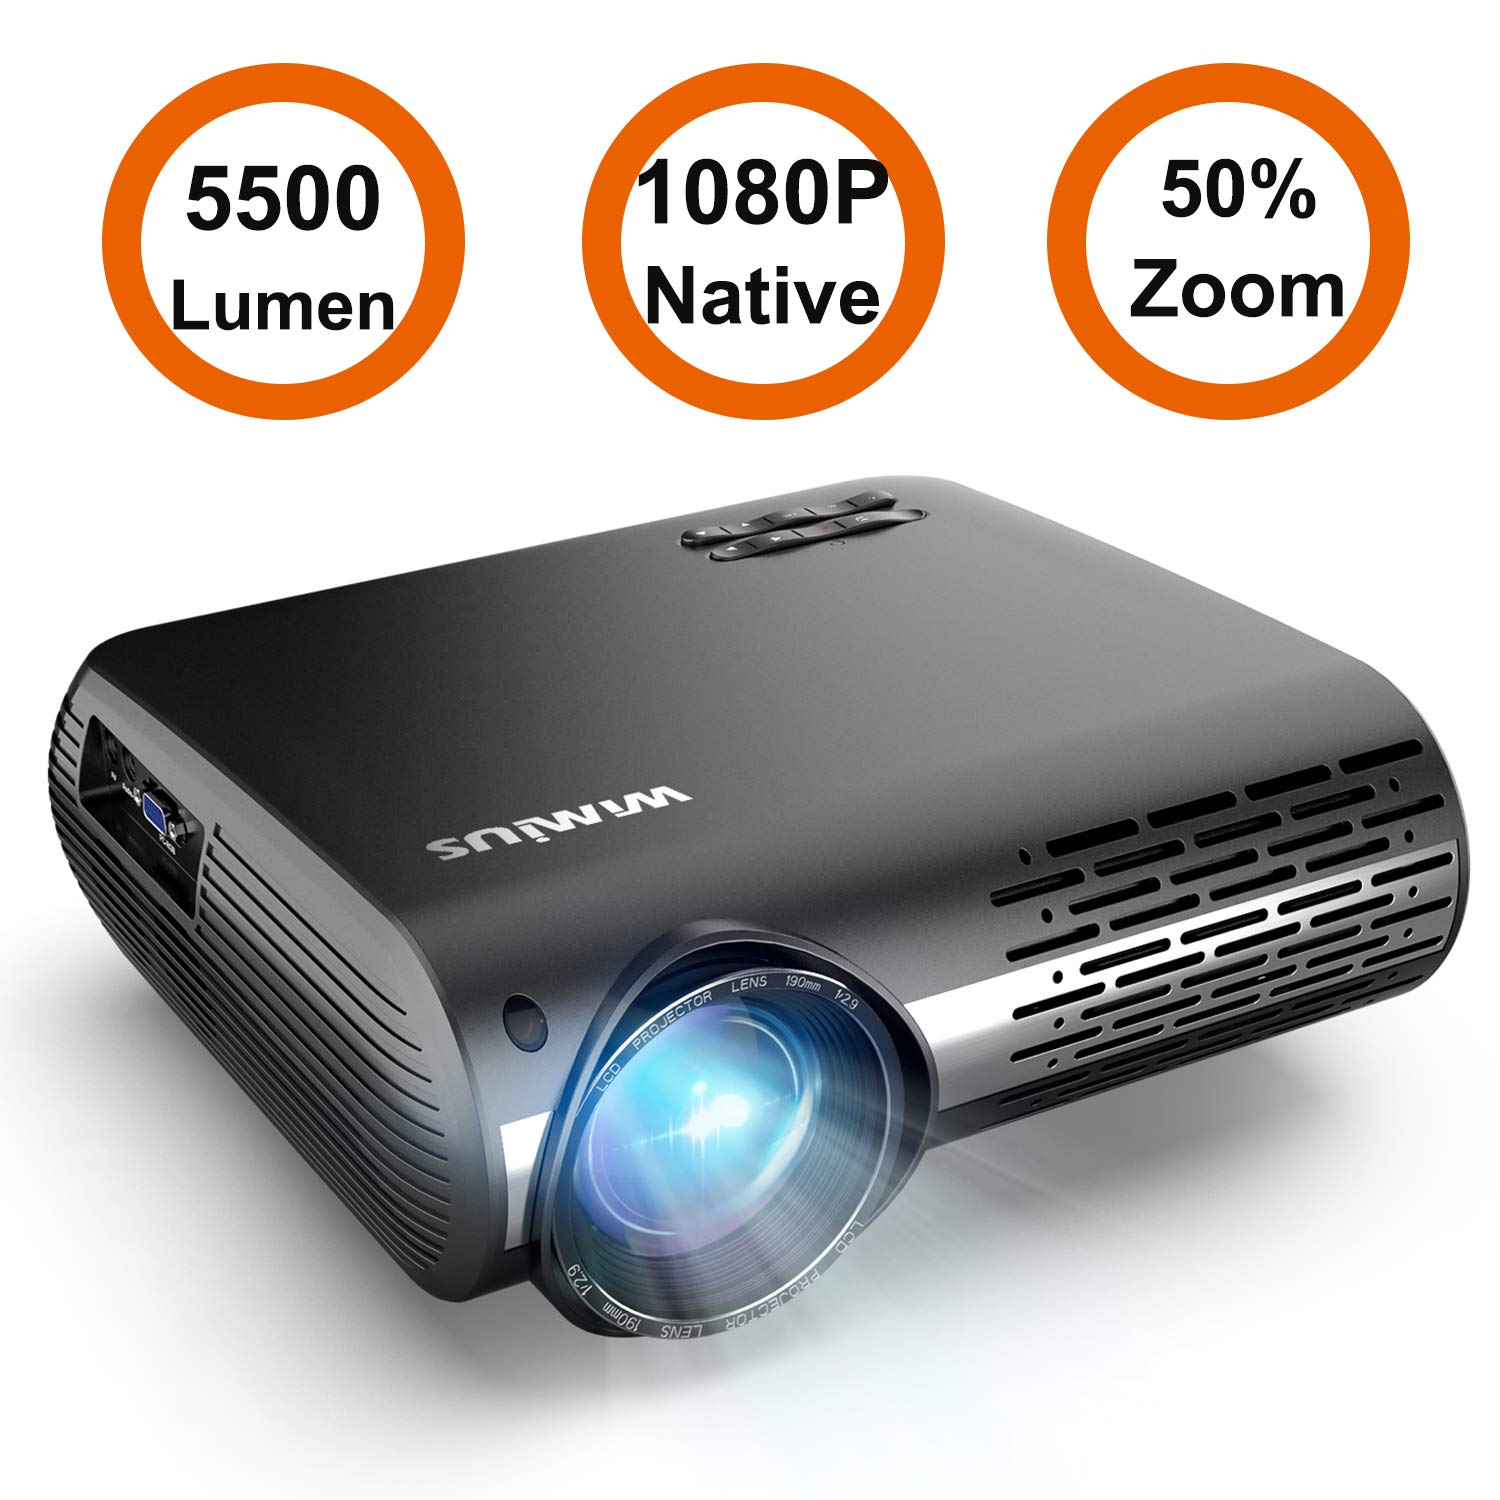 Projector, WiMiUS P20 Native 1080P LED Projector 5500 Lumen Movie Projector Support 4K Video Zoom Function ±50°Digital Keystone Correction 70,000 Hrs for Home Entertainment & PPT Business Presentation by WiMiUS